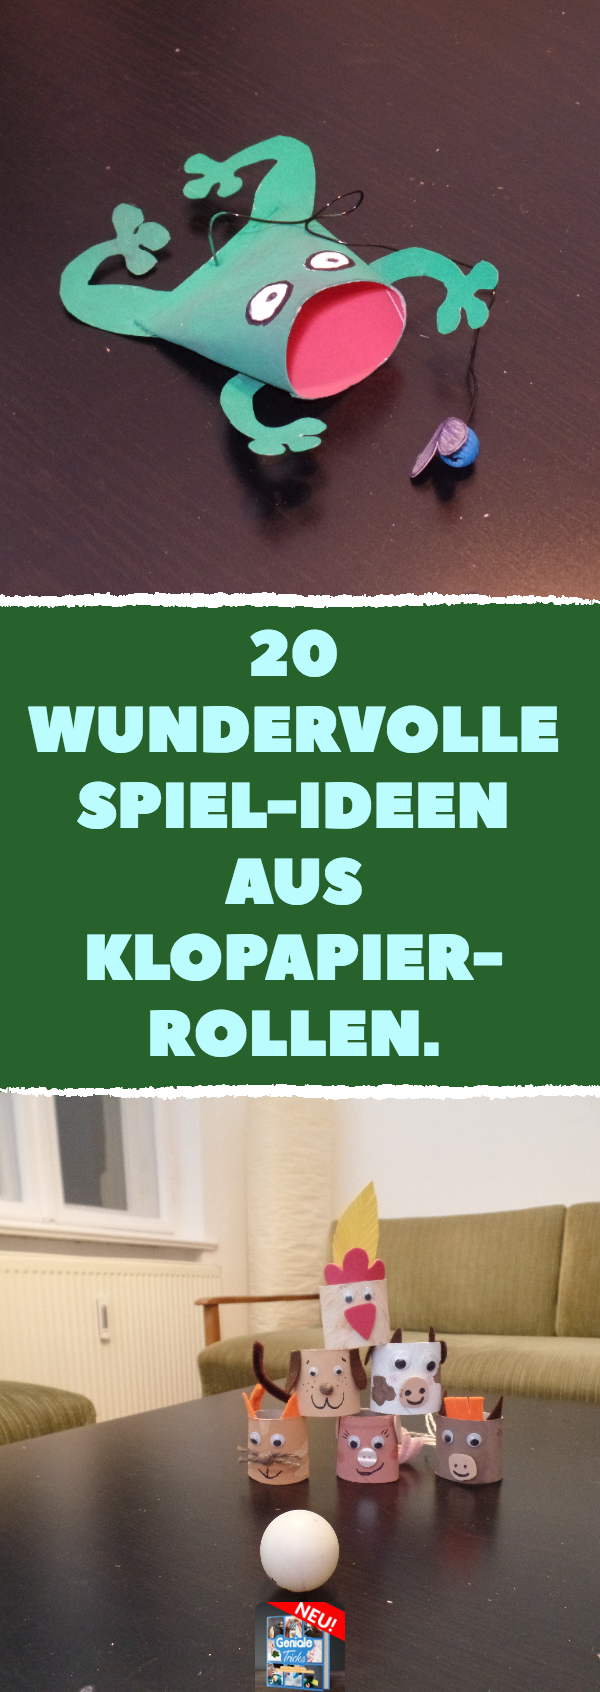 Photo of 20 tolle Spiel-Ideen aus Klopapierrollen